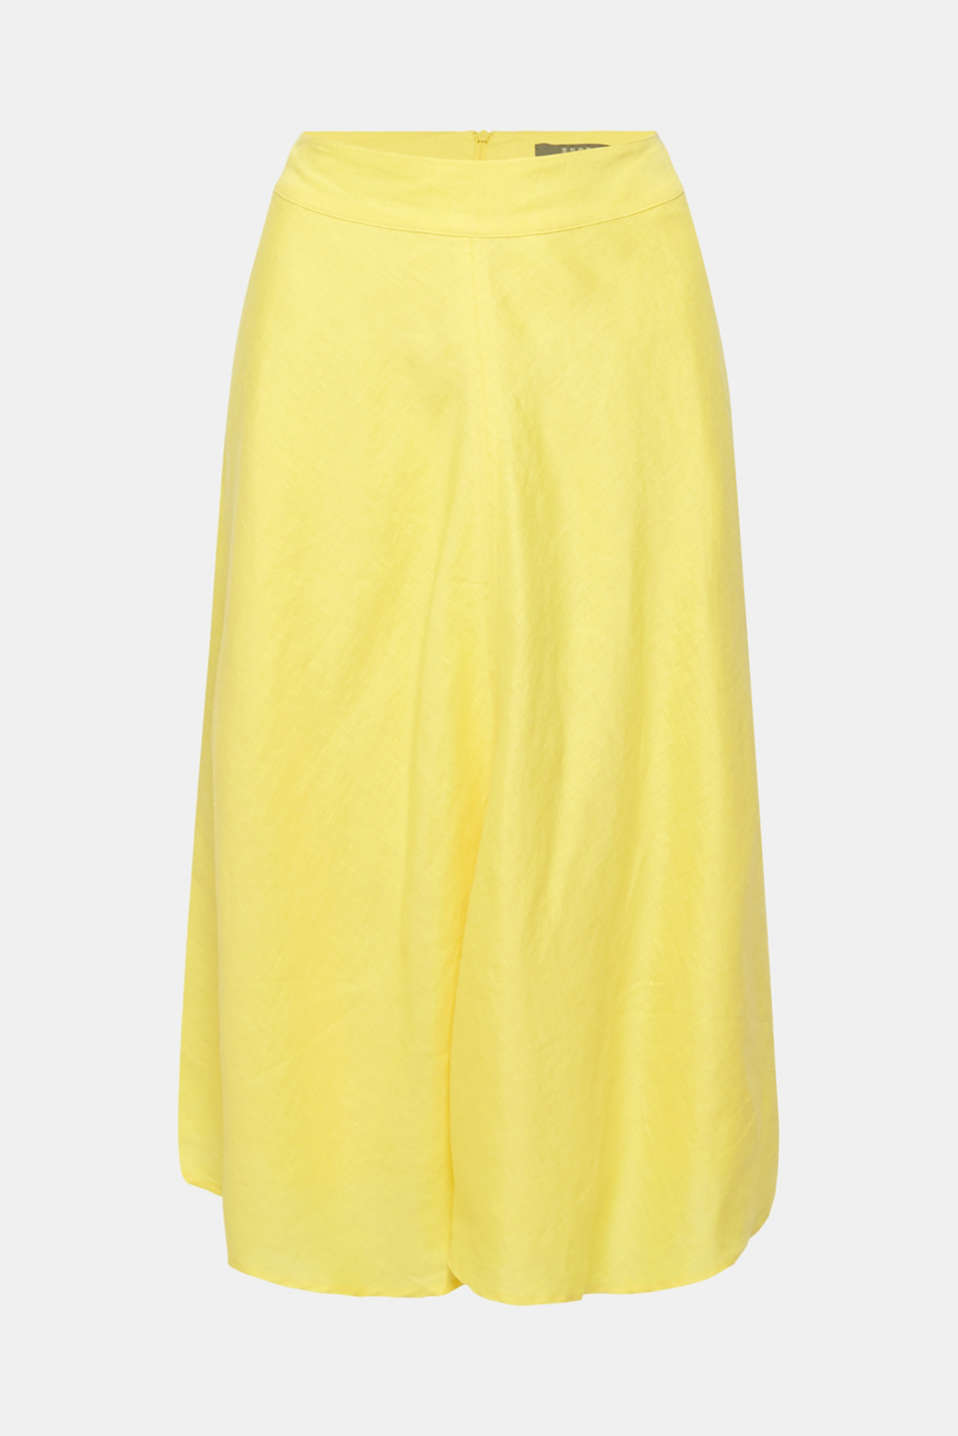 Skirts light woven, BRIGHT YELLOW, detail image number 6